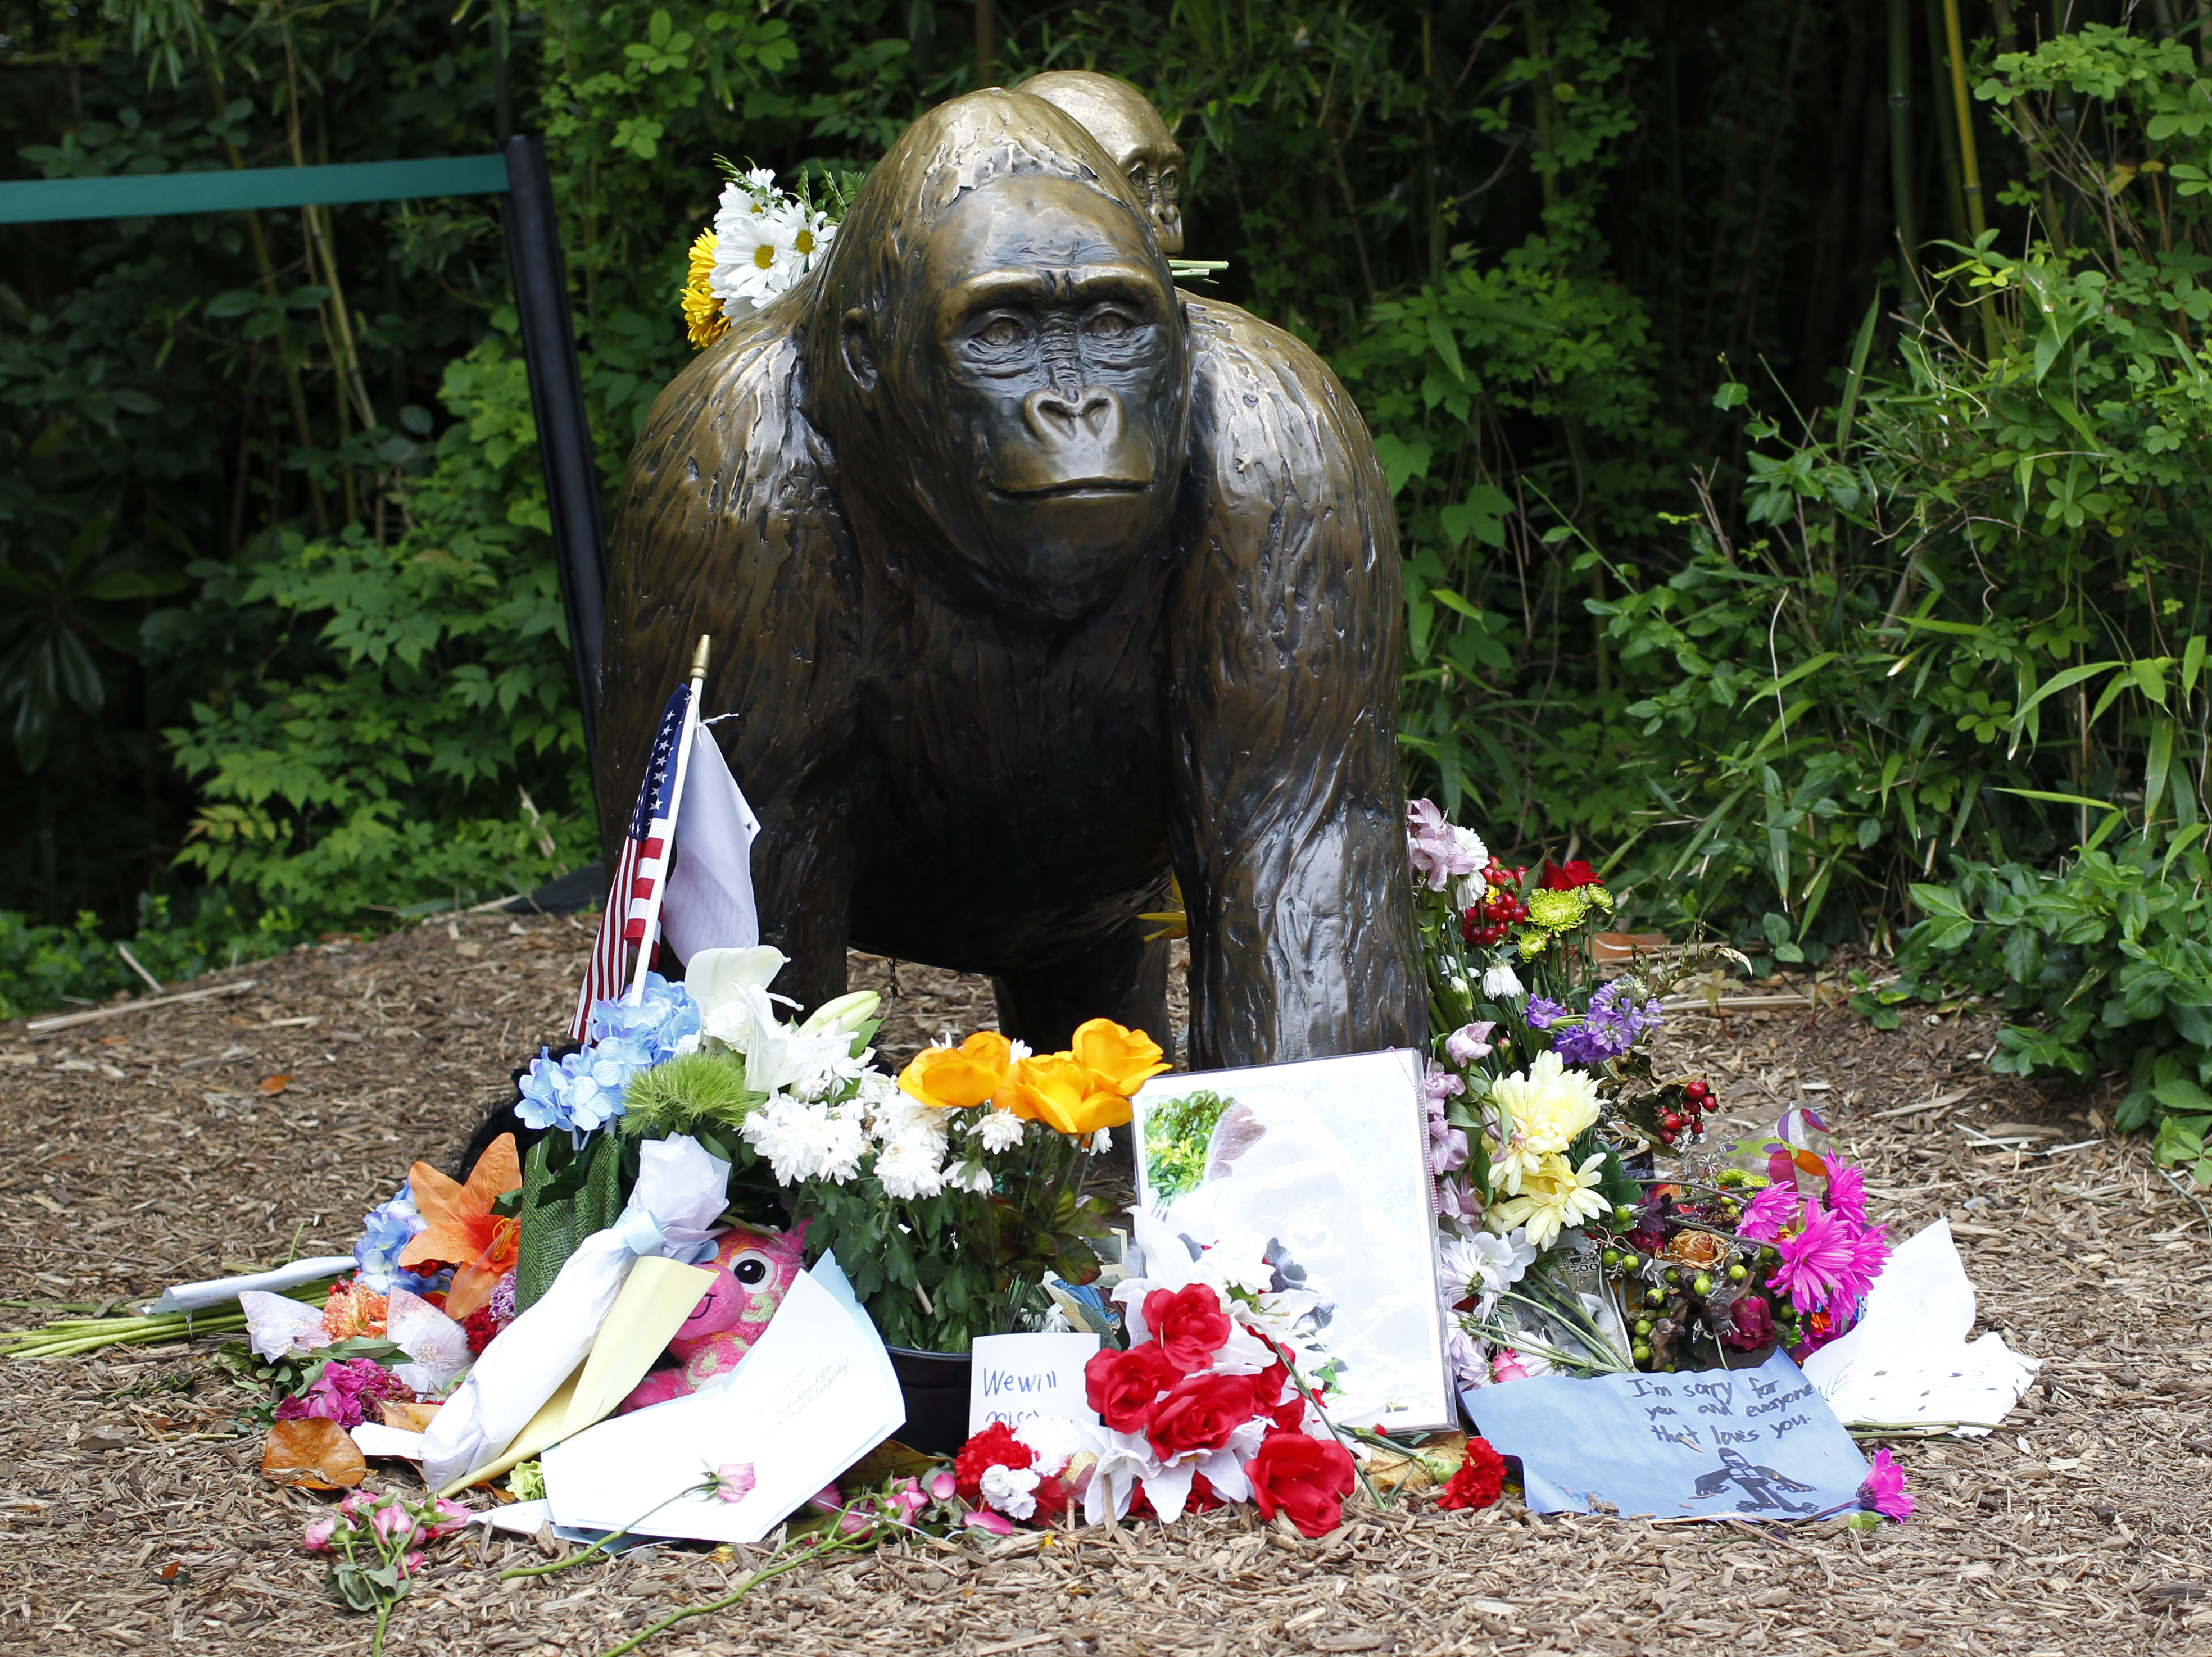 Flowers lay around a bronze statue of a gorilla and her baby outside the Cincinnati Zoo's Gorilla World exhibit in Cincinnati, Ohio, on June 2, 2016.